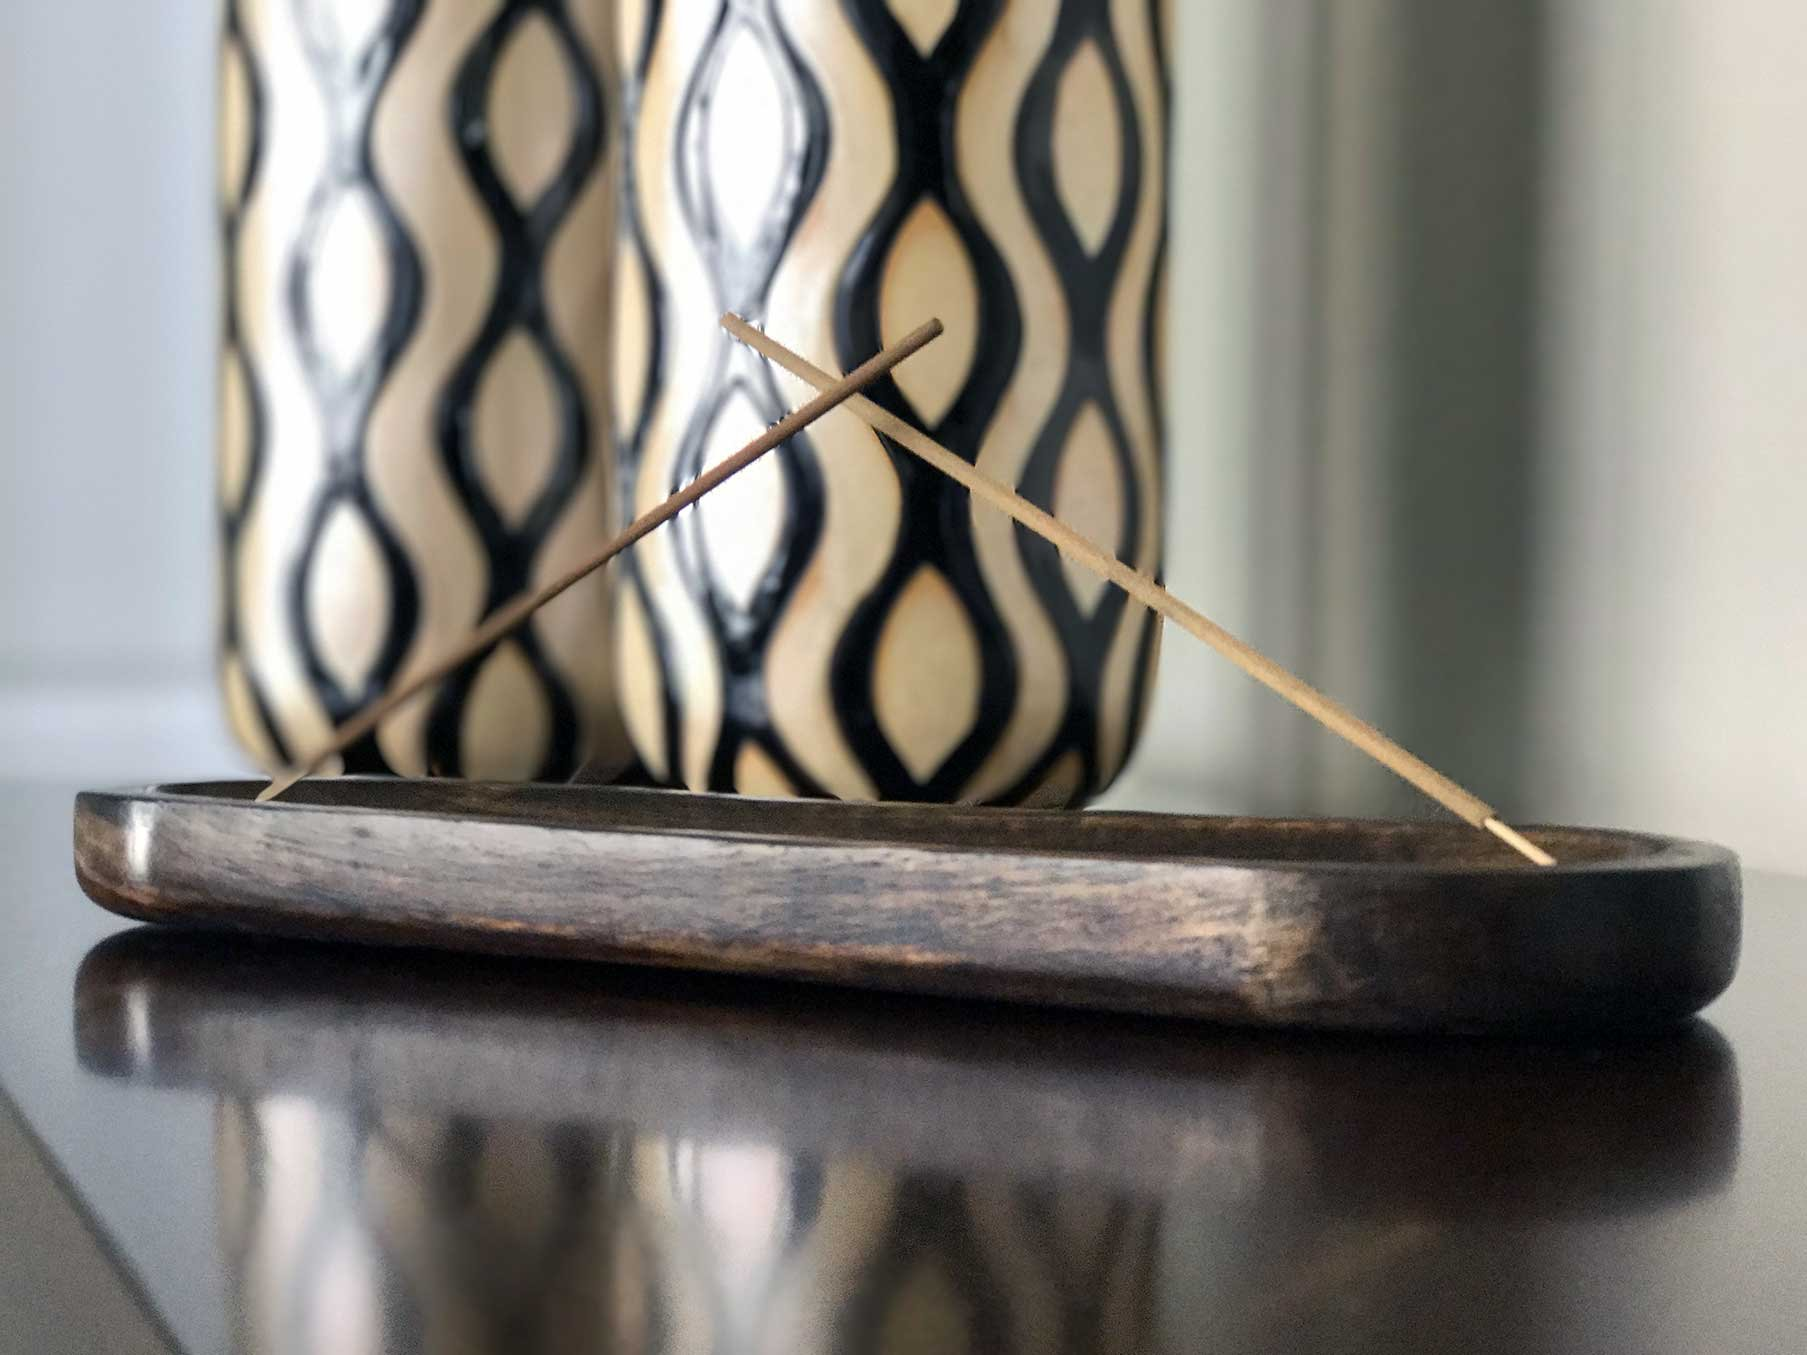 Kasa Style Trough Antique Wood Hand Made Double Incense Burner Ash Catcher by Kasa Style (Image #3)